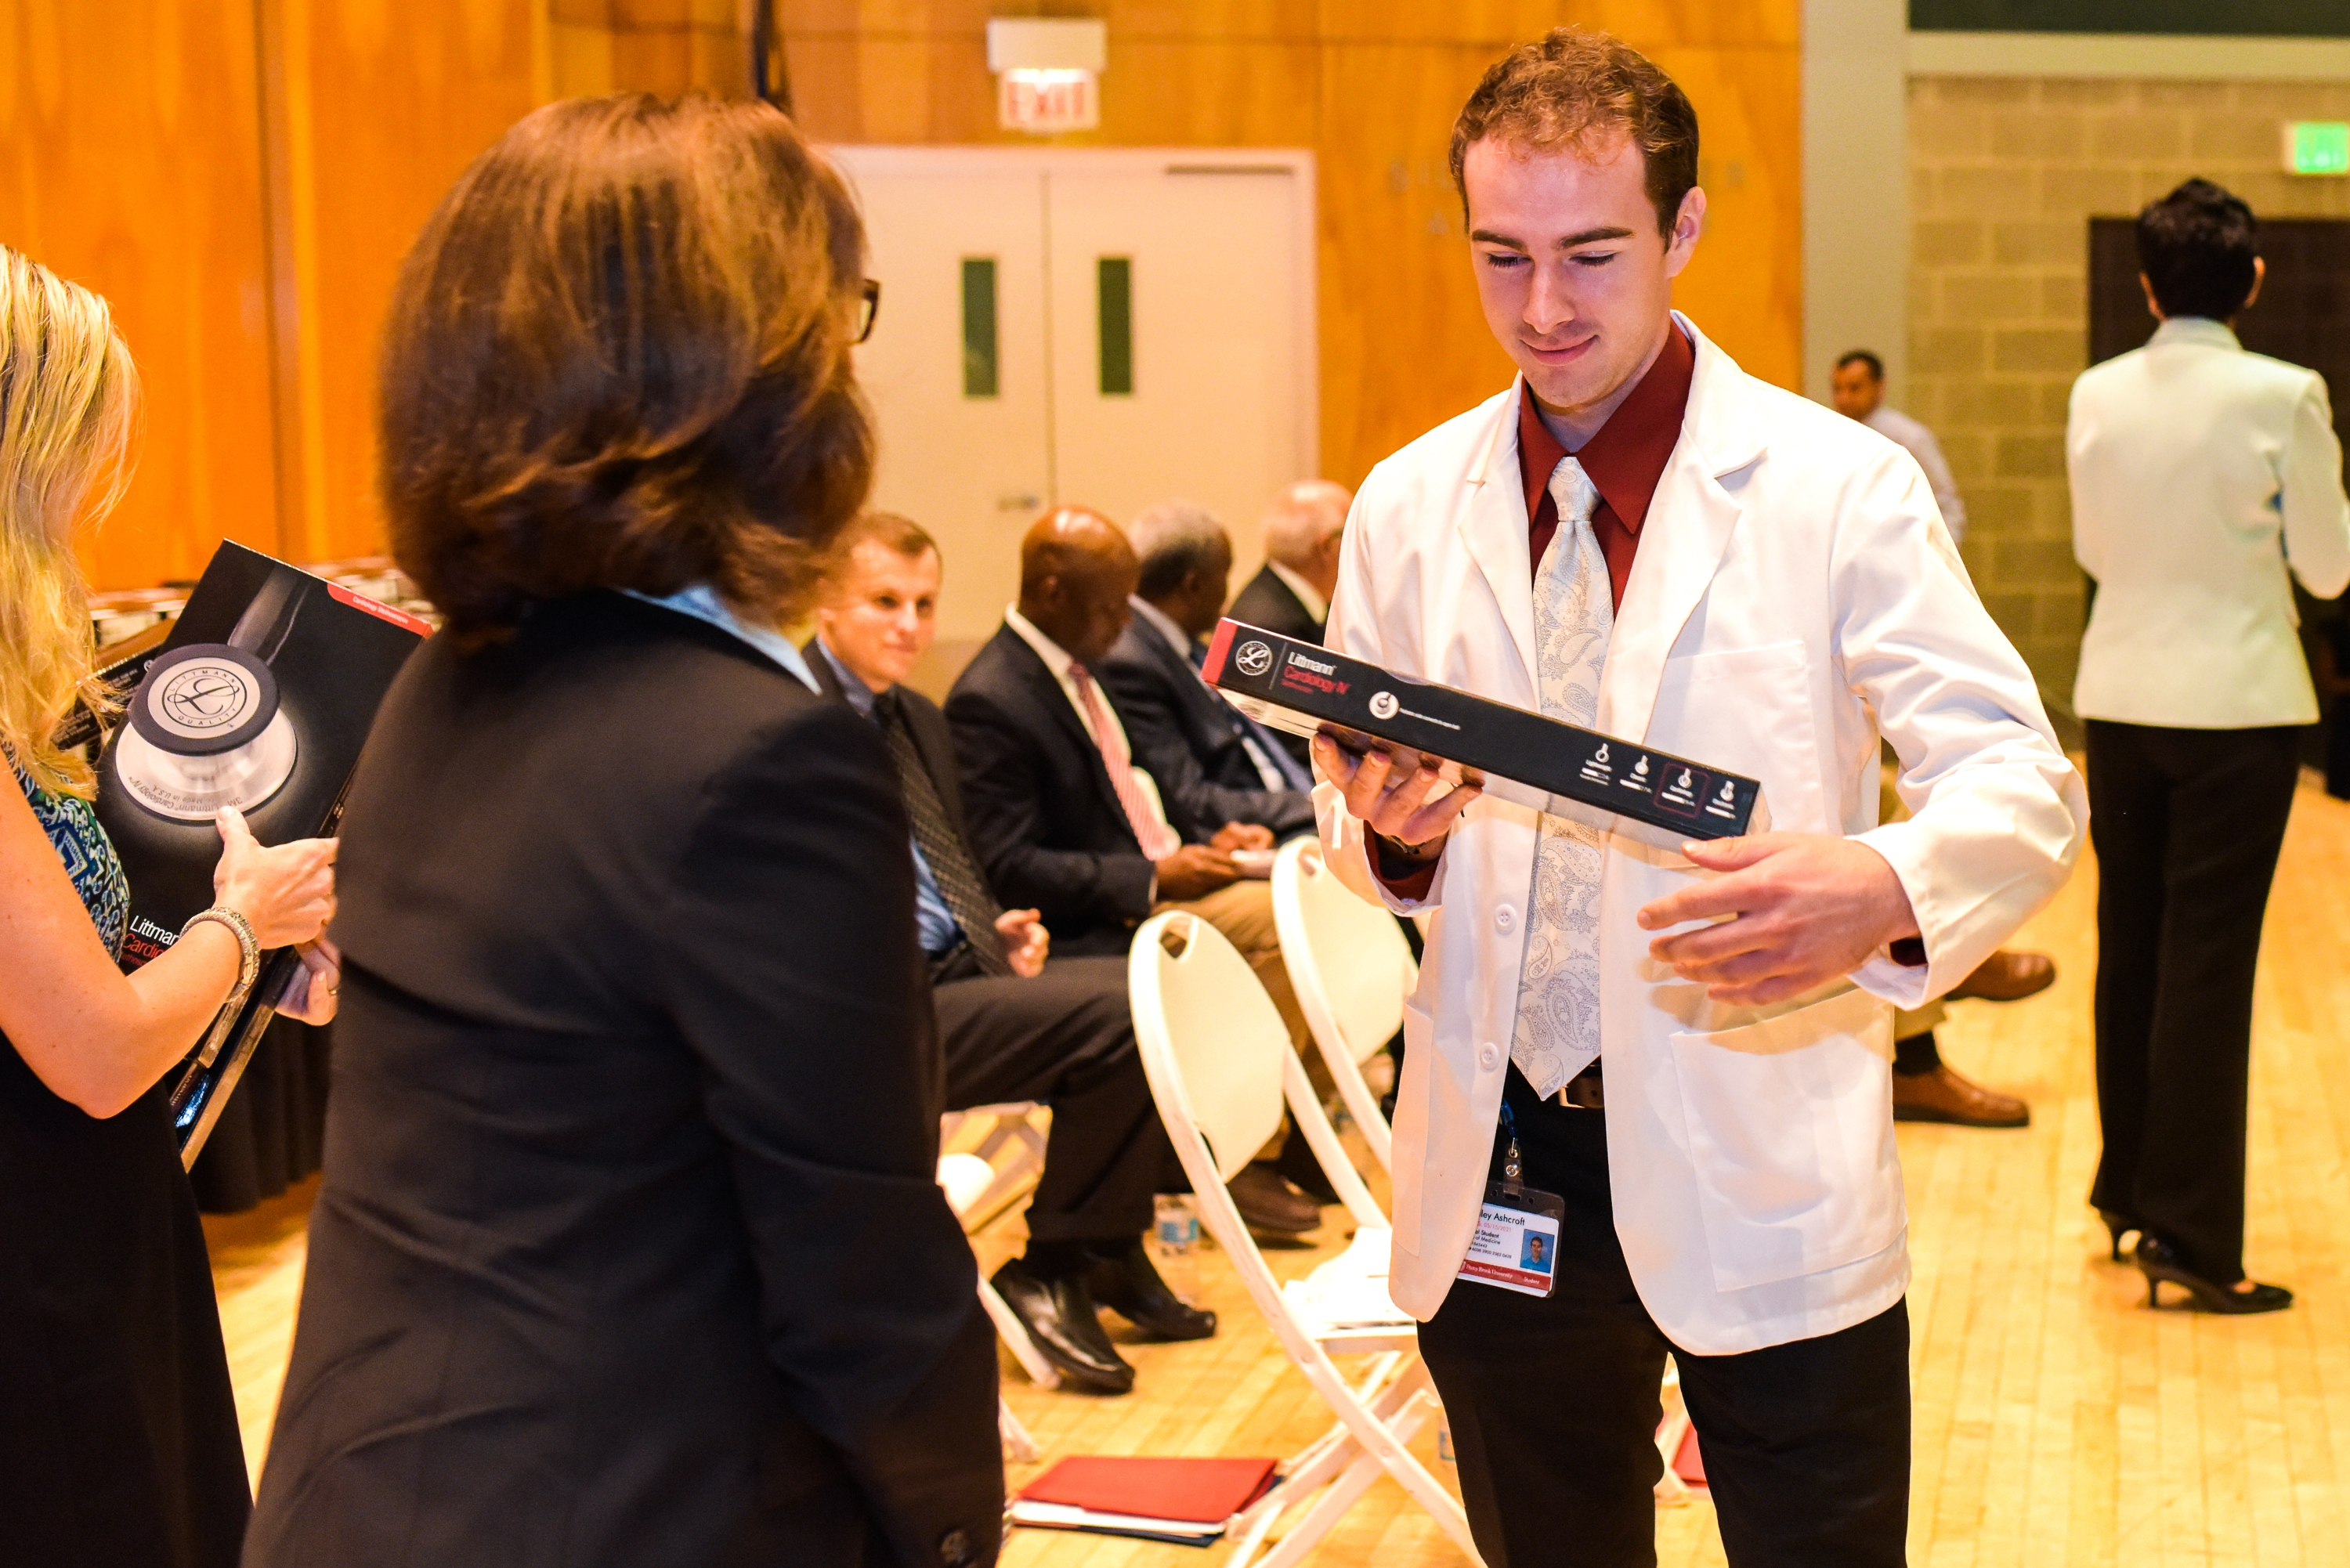 Receiving stethoscopes at their White Coat Ceremony helps students like Bradley Ashcroft '21 feel the support of the School of Medicine alumni who have come before them.